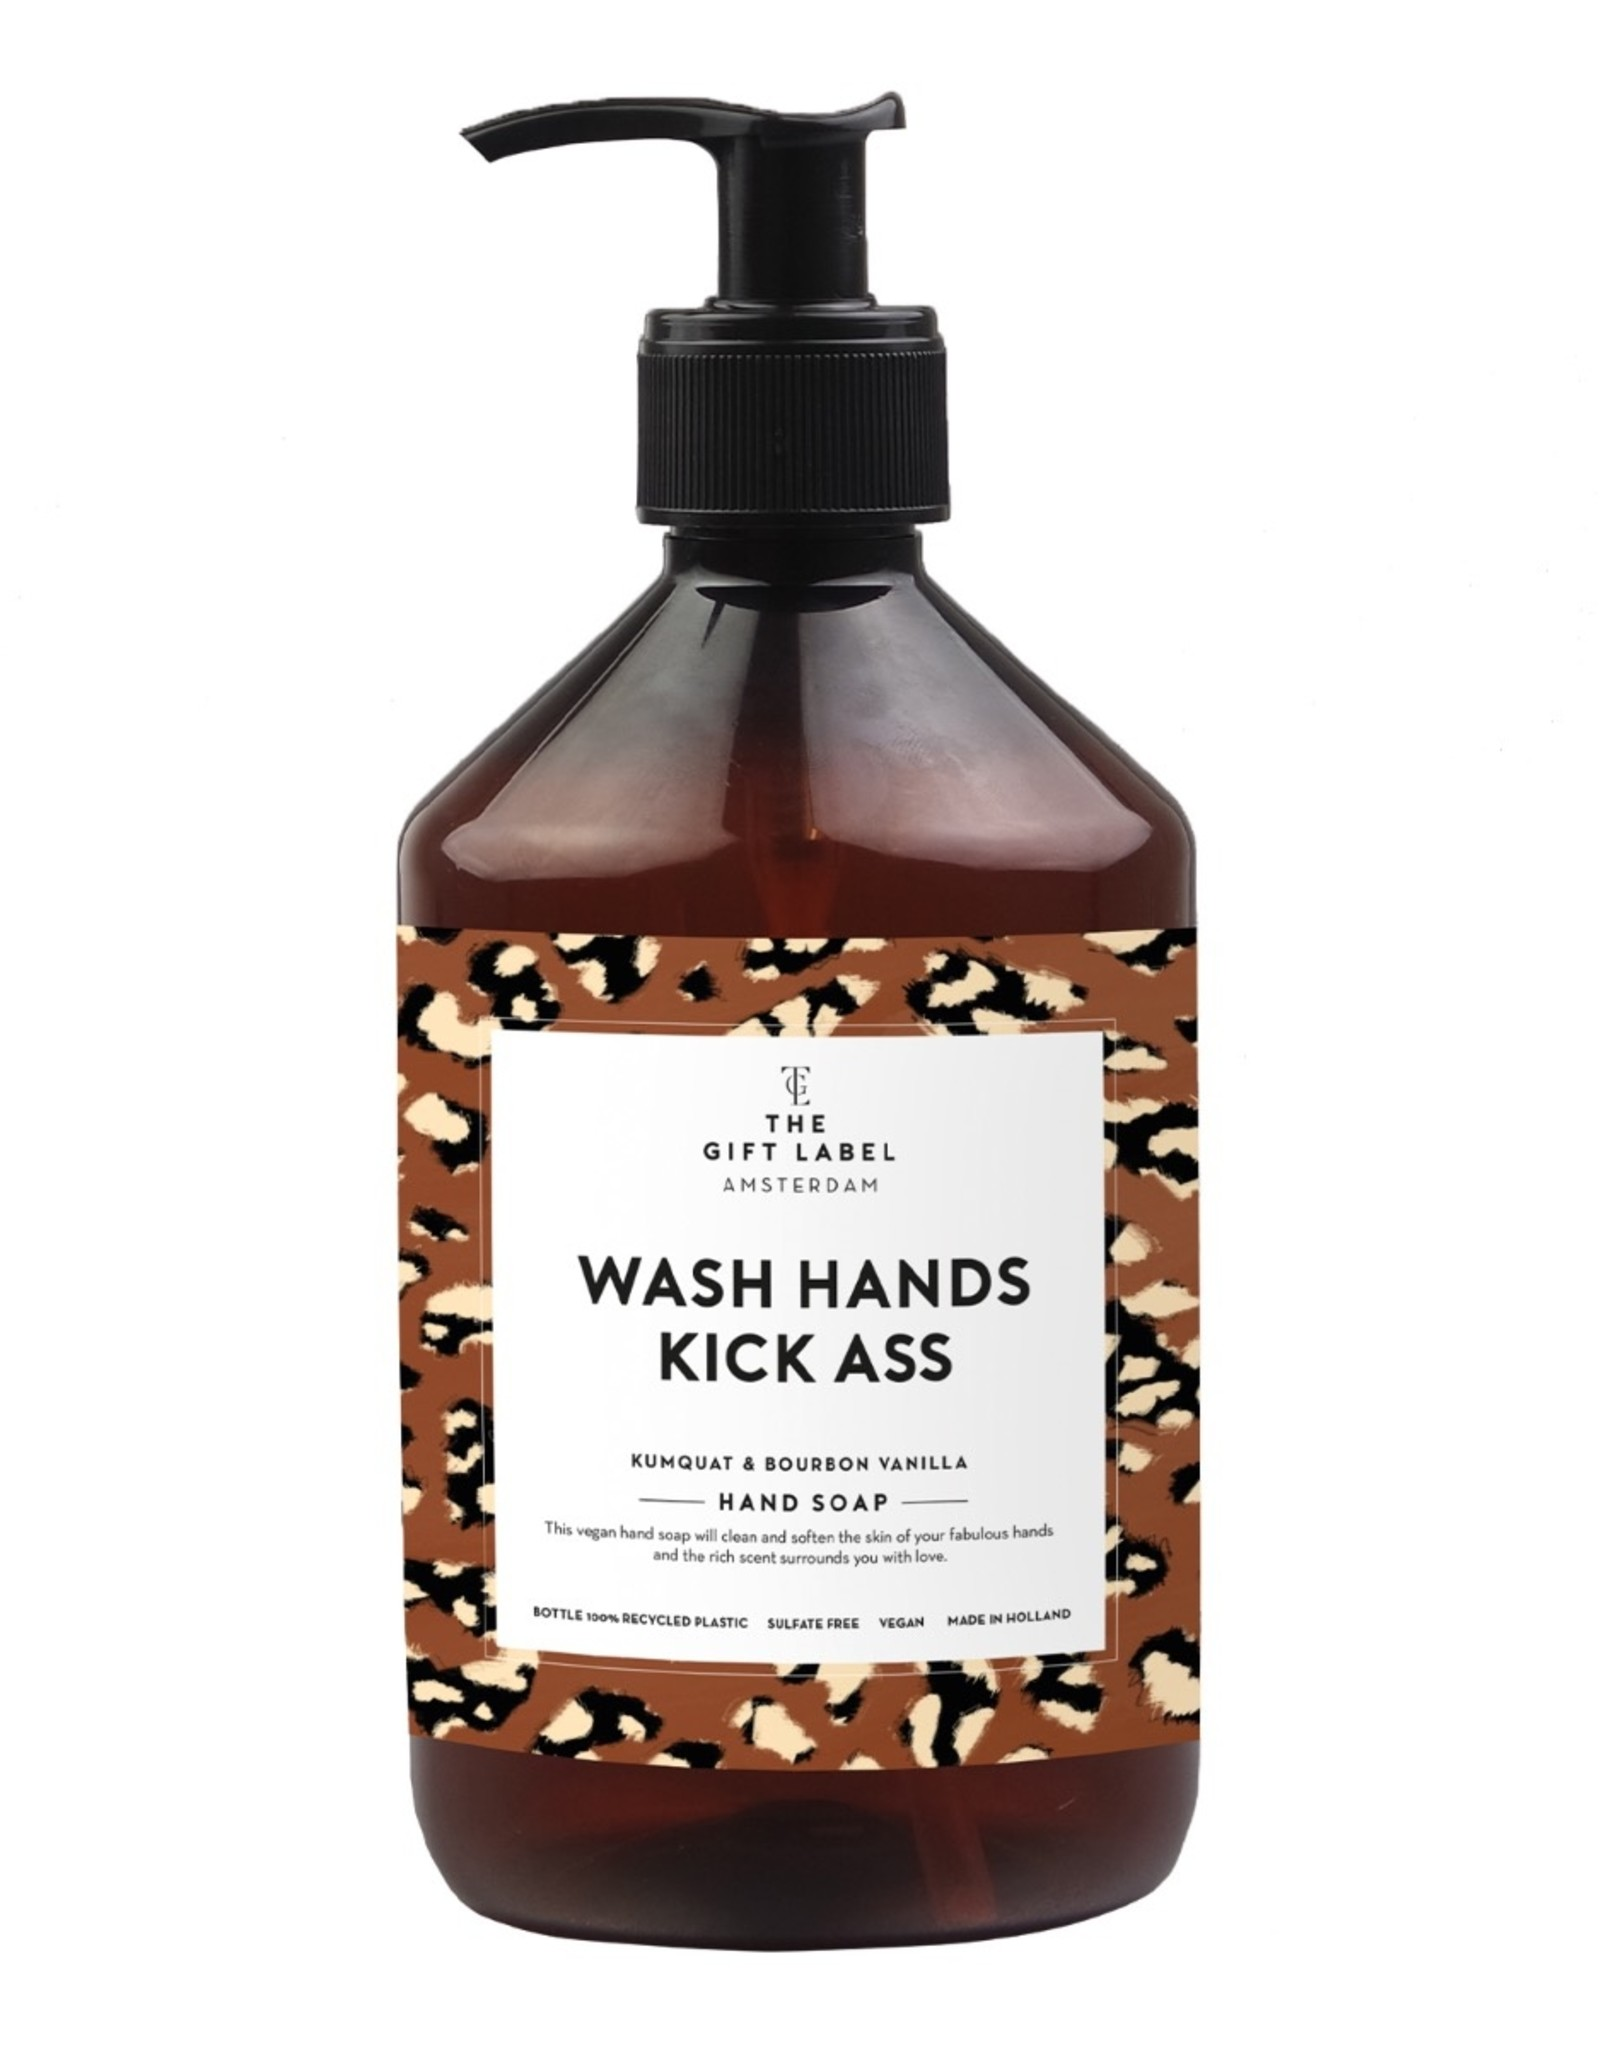 The Gift Label The Gift Label Hand Soap Wash Hands Kick Ass